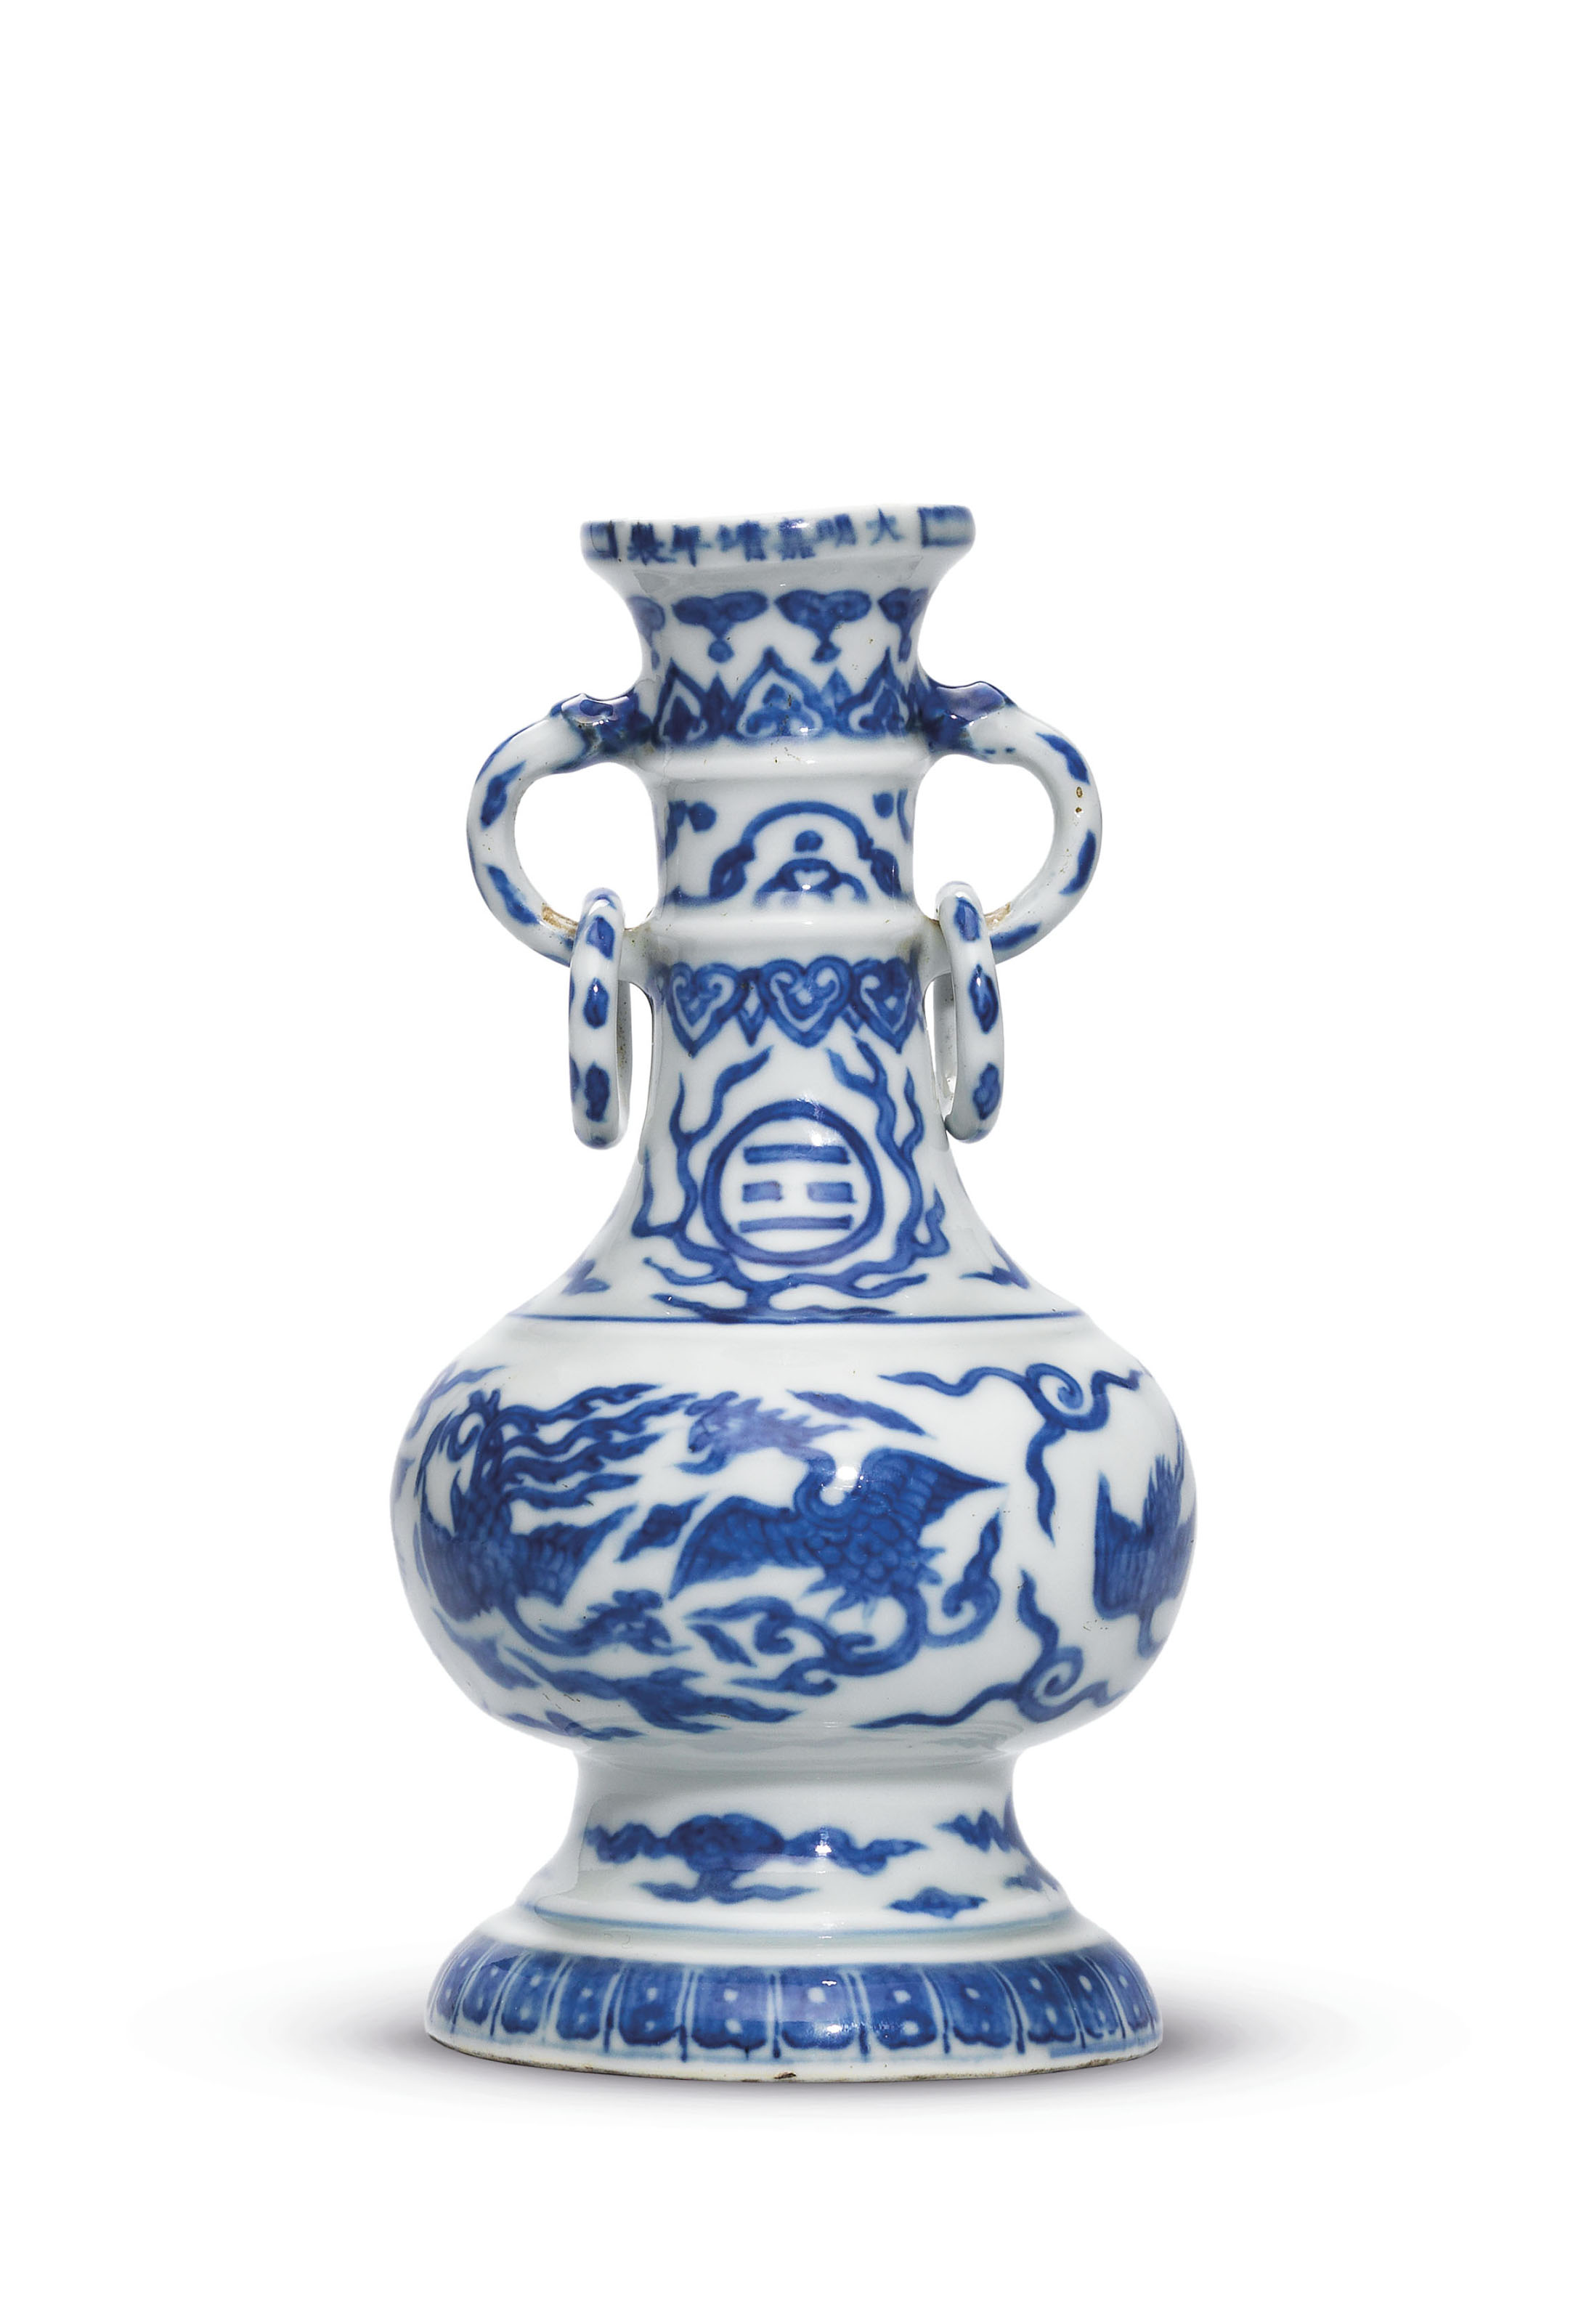 A RARE BLUE AND WHITE 'PHOENIX AND CRANES' VASE